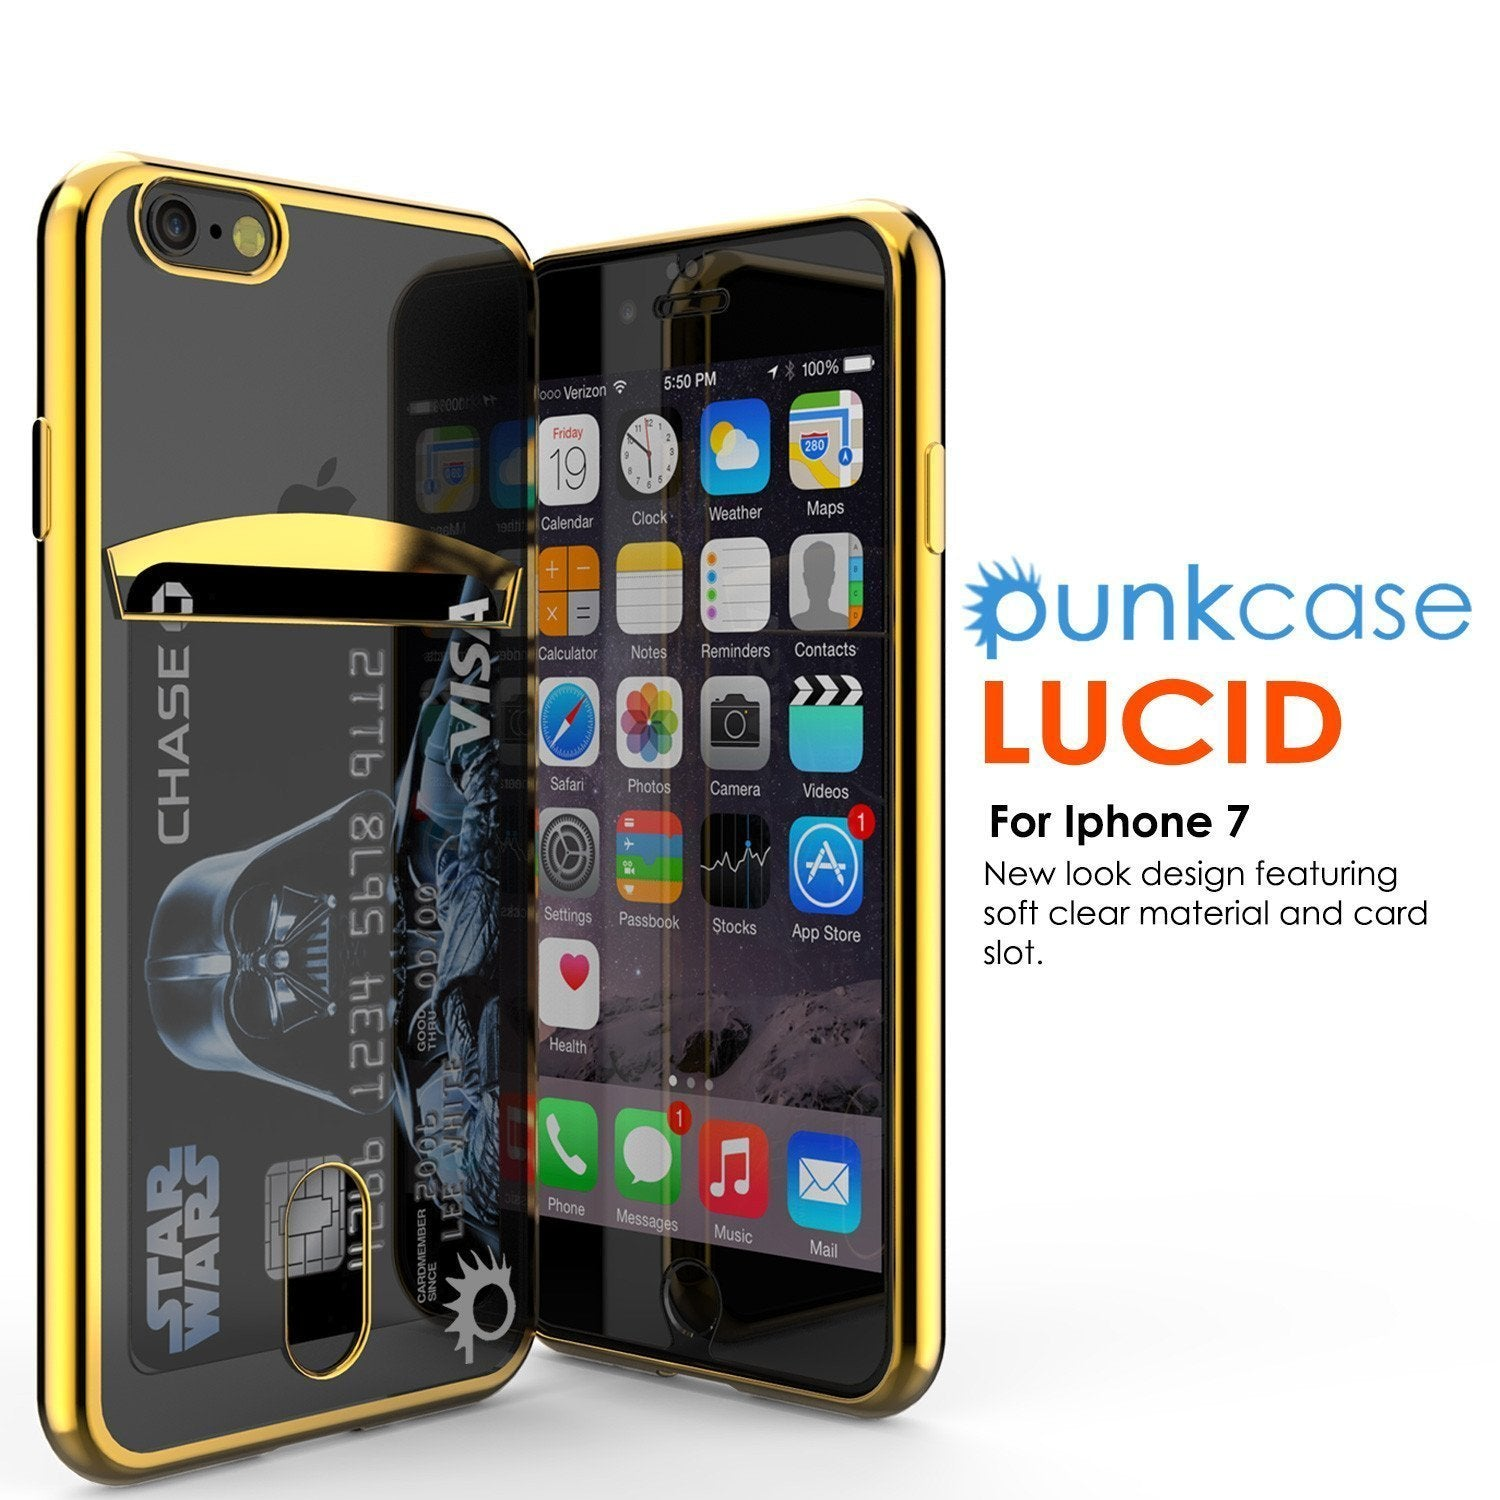 iPhone 8 Case, PUNKCASE® LUCID Gold Series | Card Slot | SHIELD Screen Protector | Ultra fit